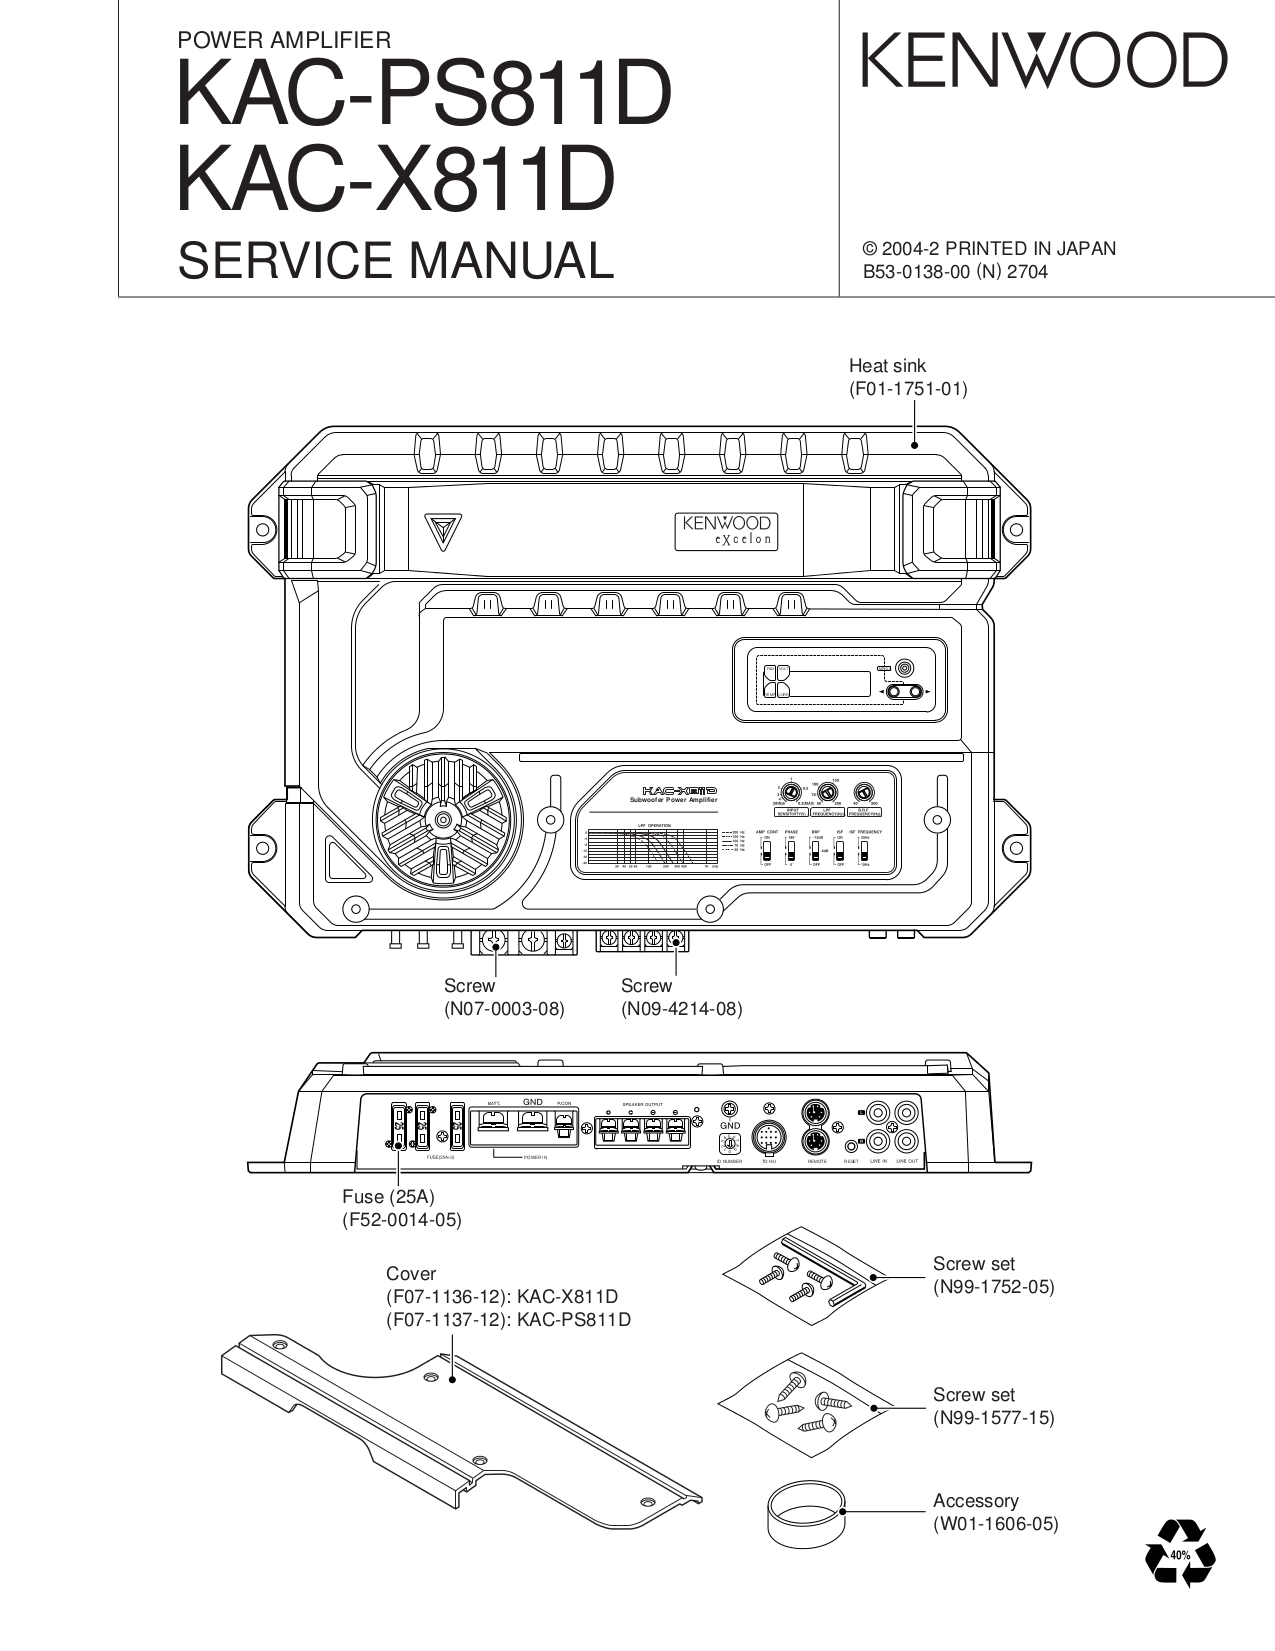 KAC X811D.pdf 0 wiring diagram kenwood kac m1804 gandul 45 77 79 119 kenwood kac 622 wiring diagram at reclaimingppi.co